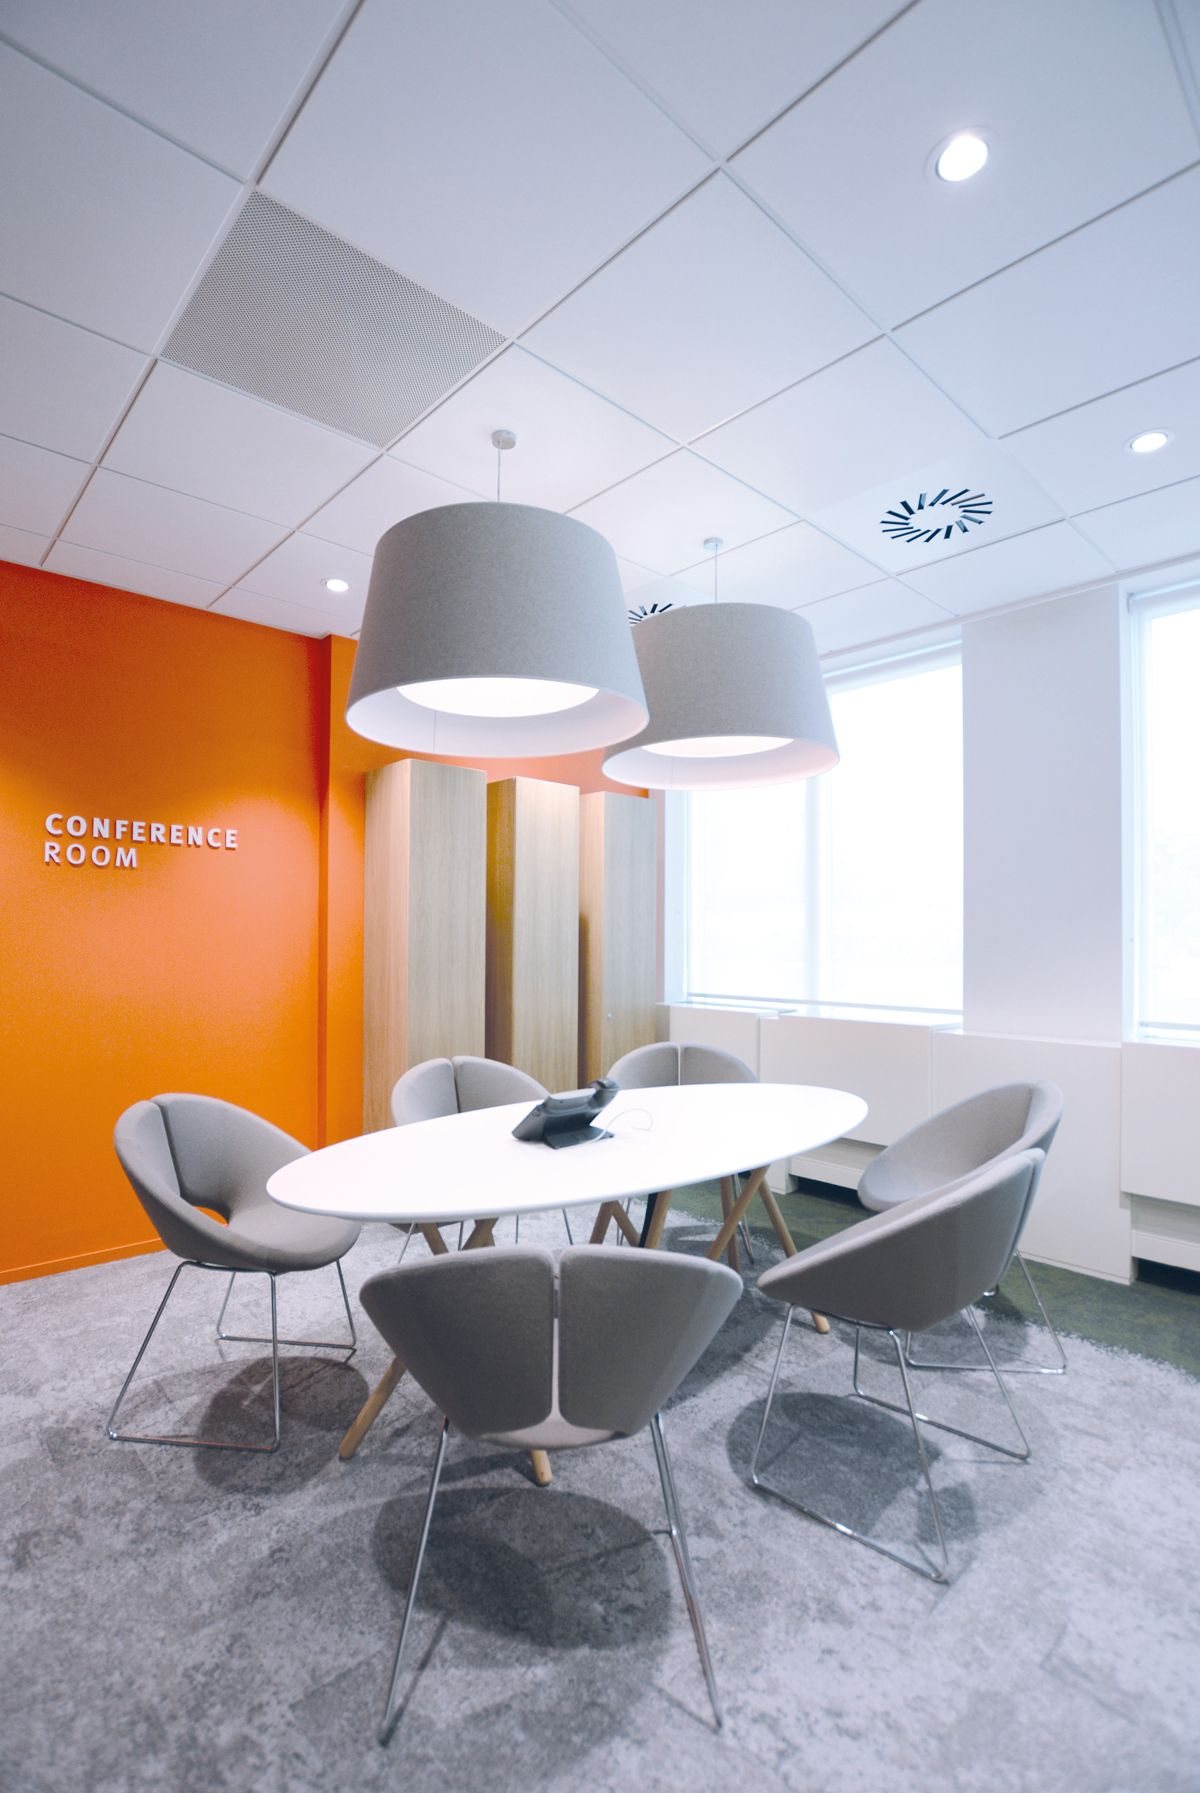 Armstrongs new dune evo ceiling tile range helps architects meet armstrongs new dune evo ceiling tile range helps architects meet sustainability and acoustic targets in association dailygadgetfo Choice Image